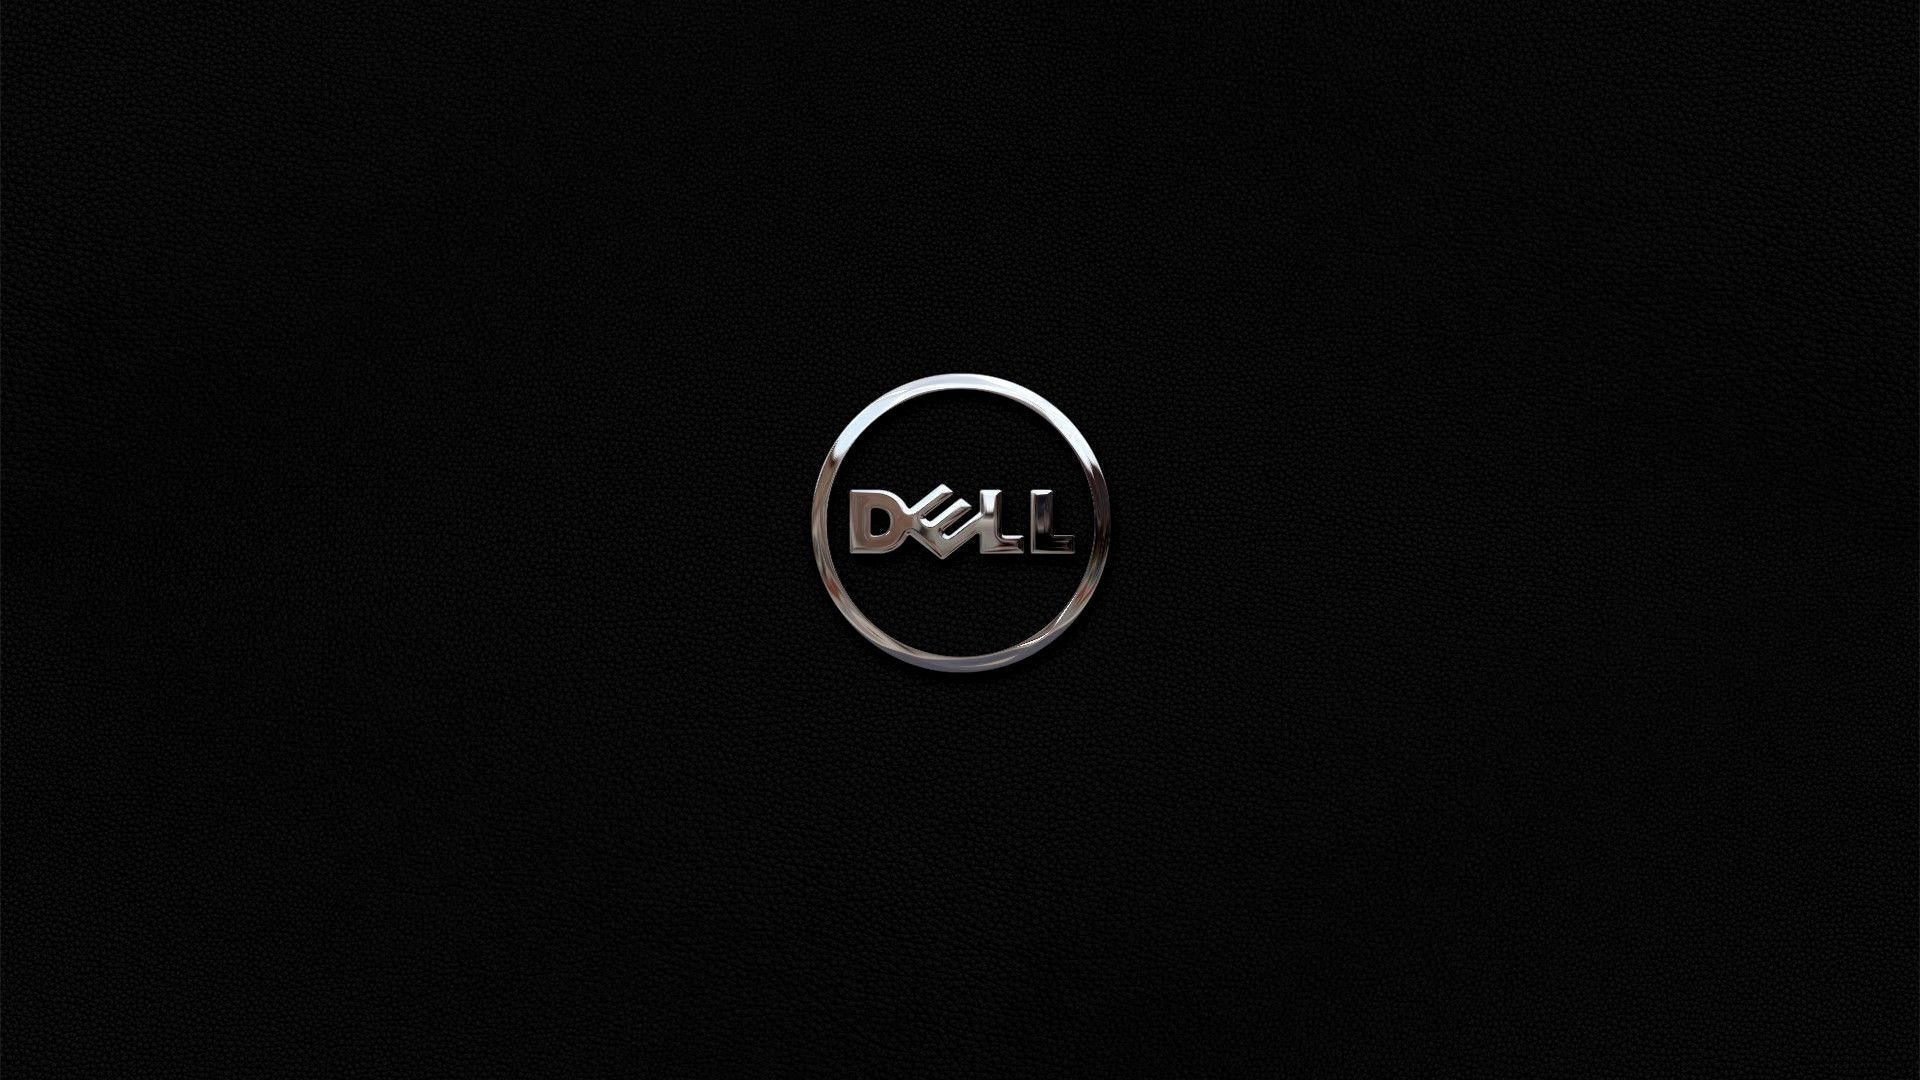 Dell Gaming Wallpapers - Wallpaper Cave